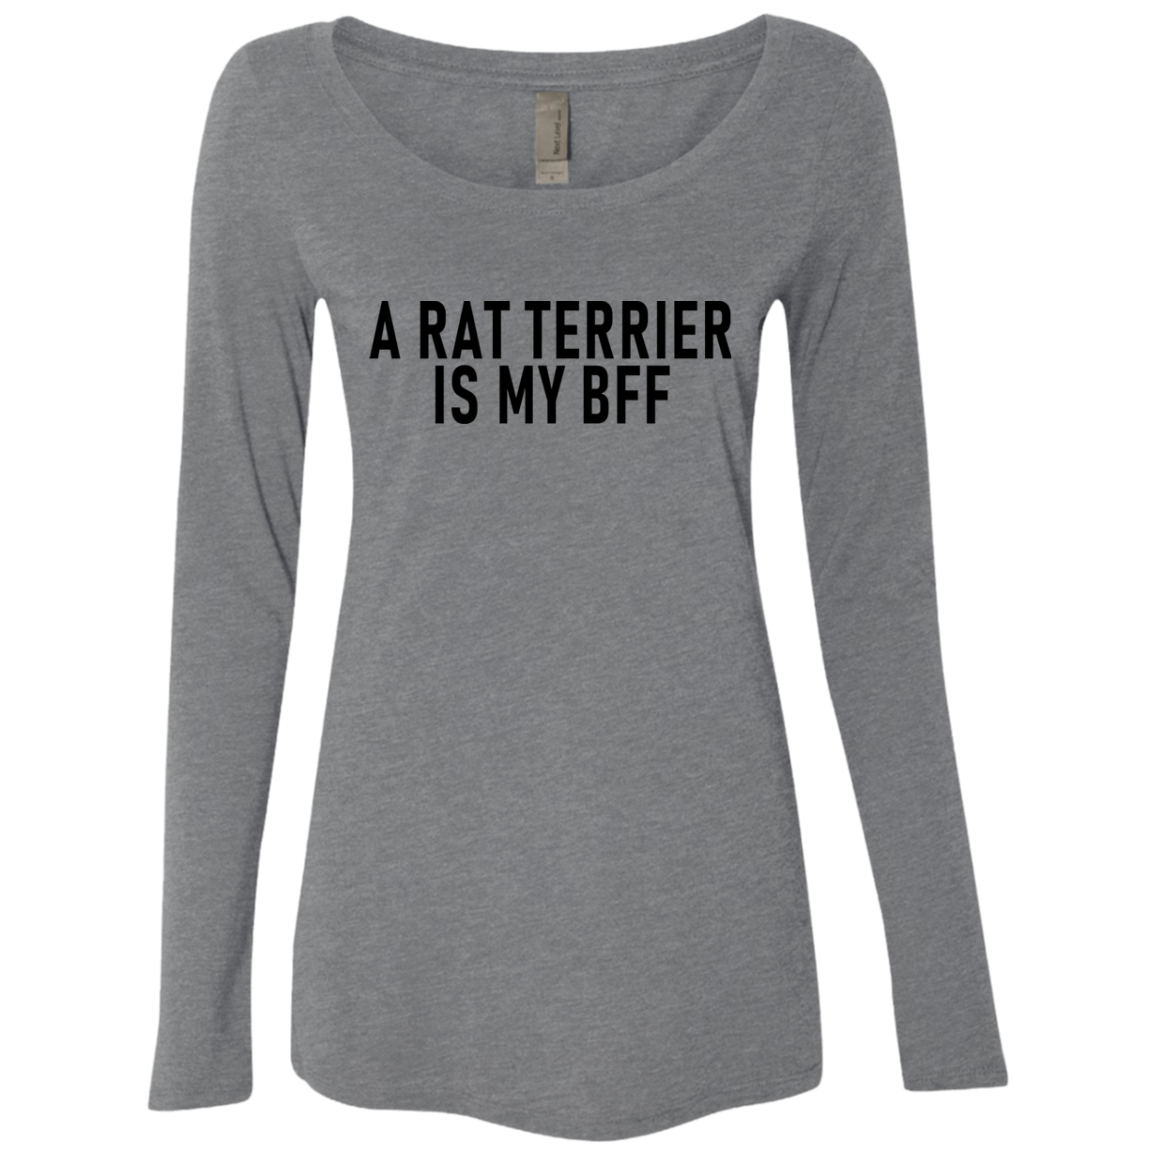 A Rat Terrier Is My Bff Women's Long Sleeve Tee